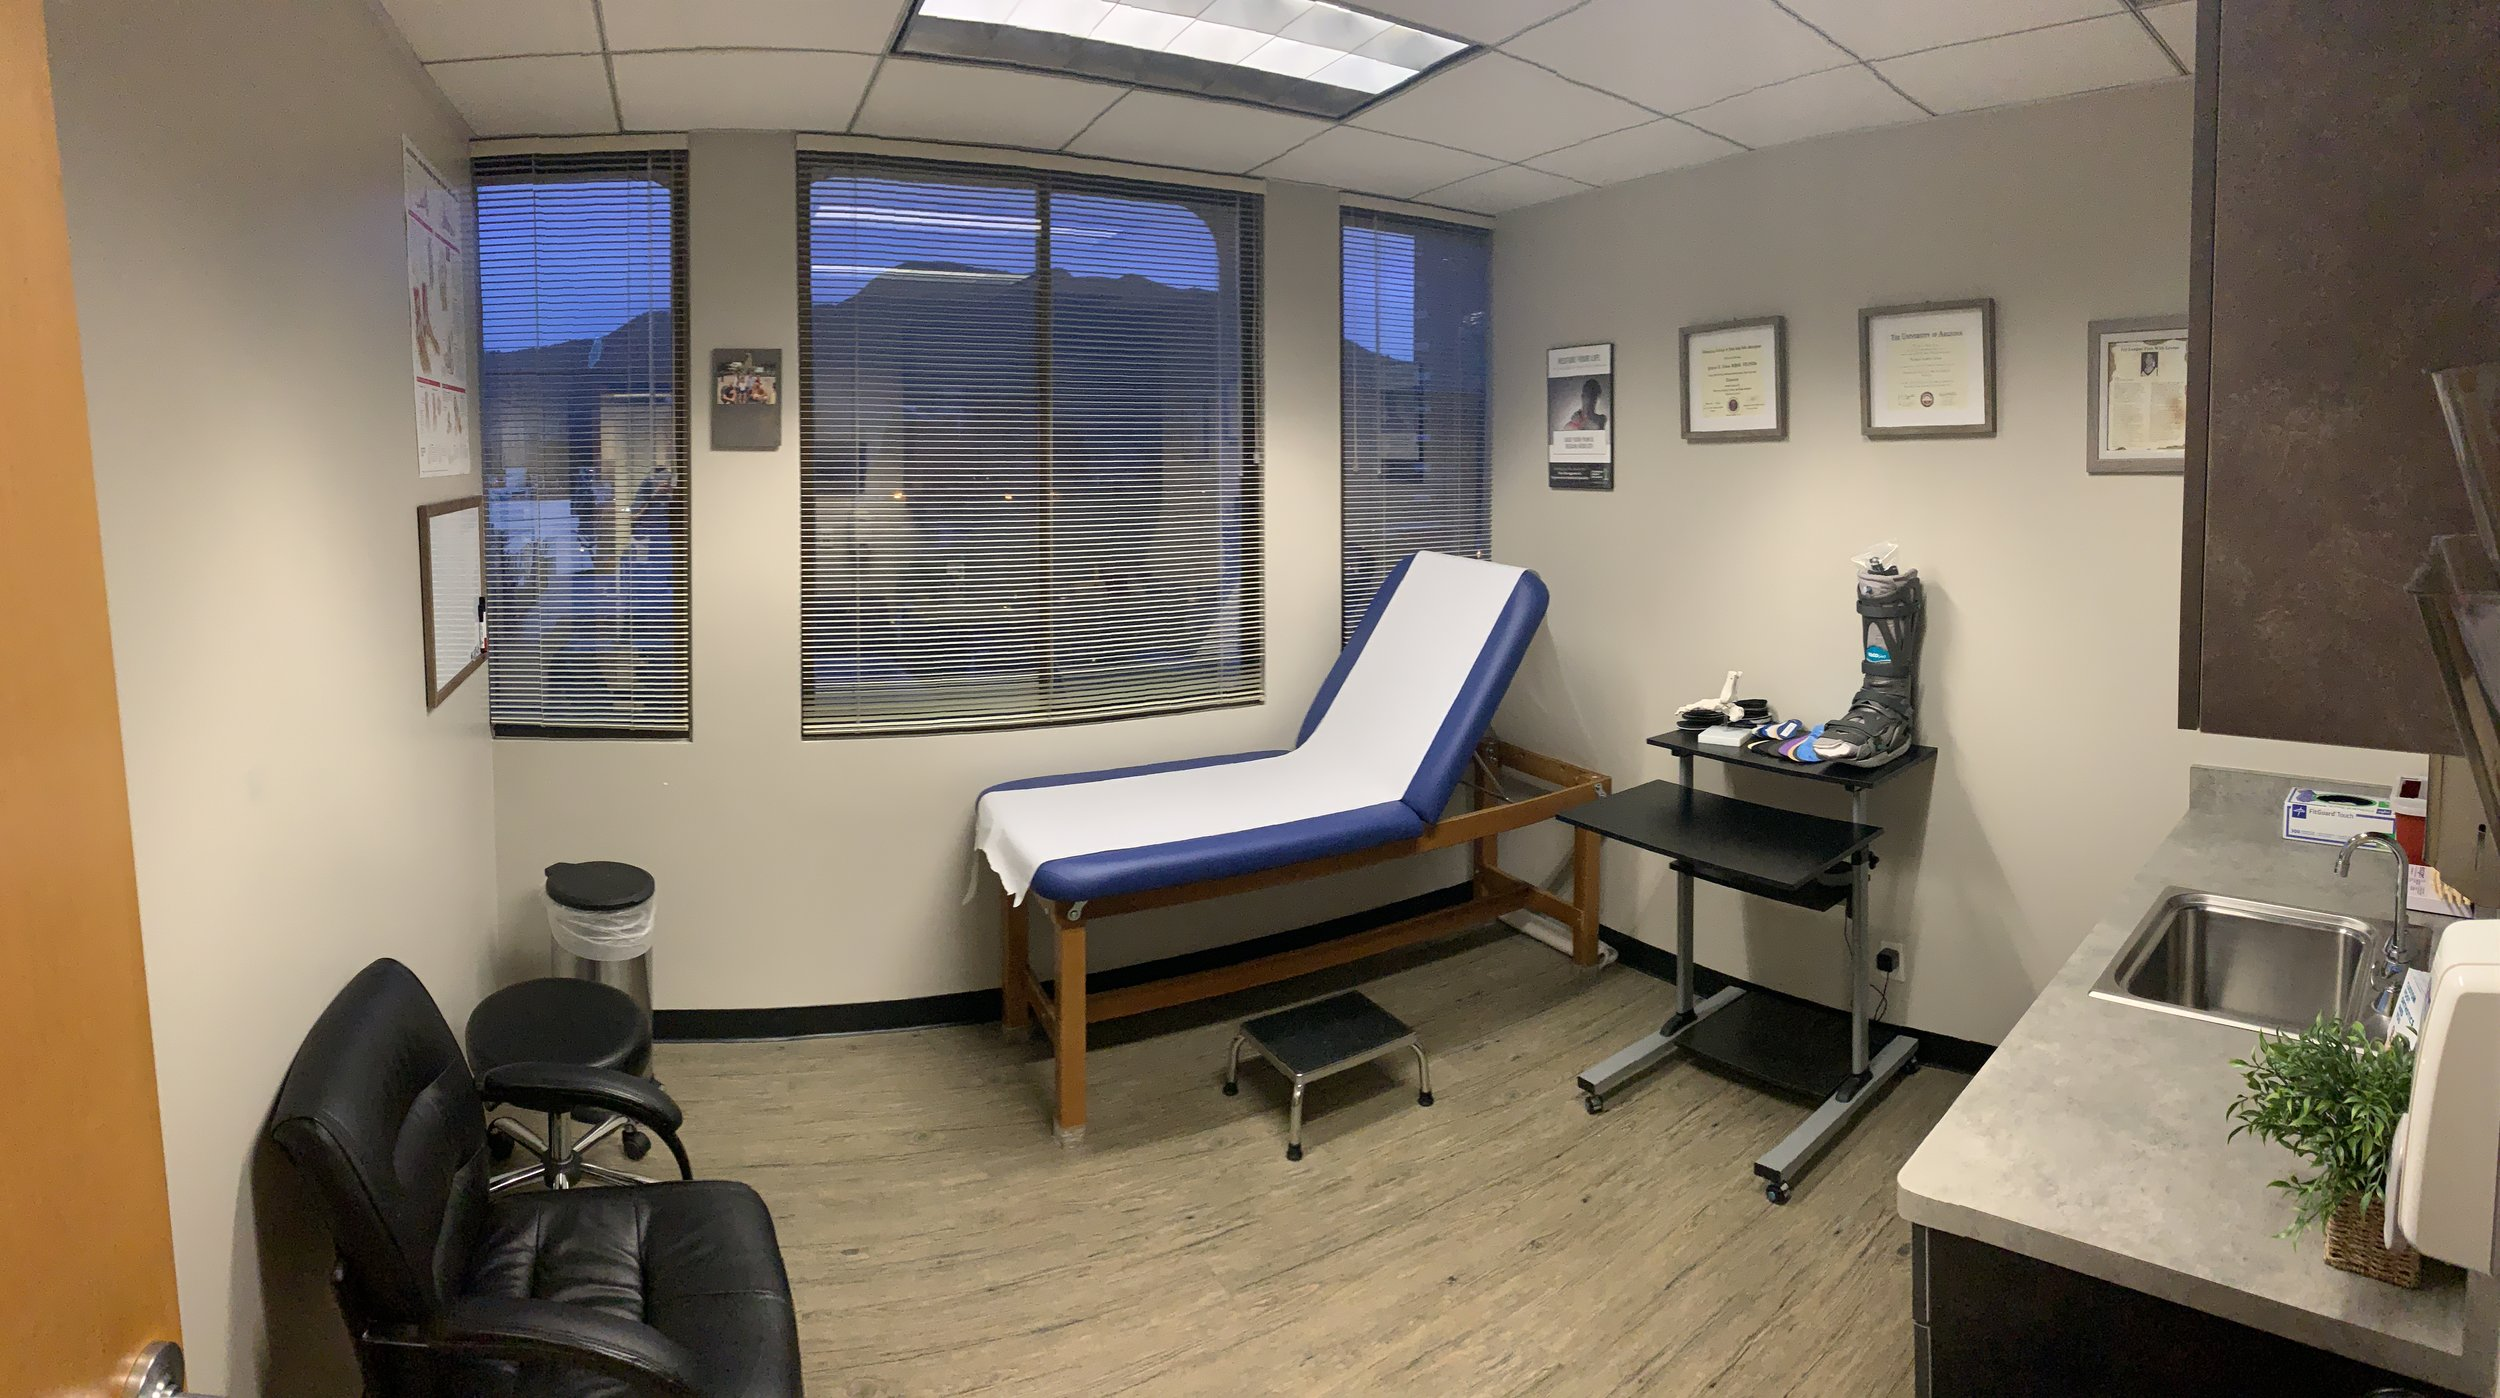 Dr. Levine's clinic room